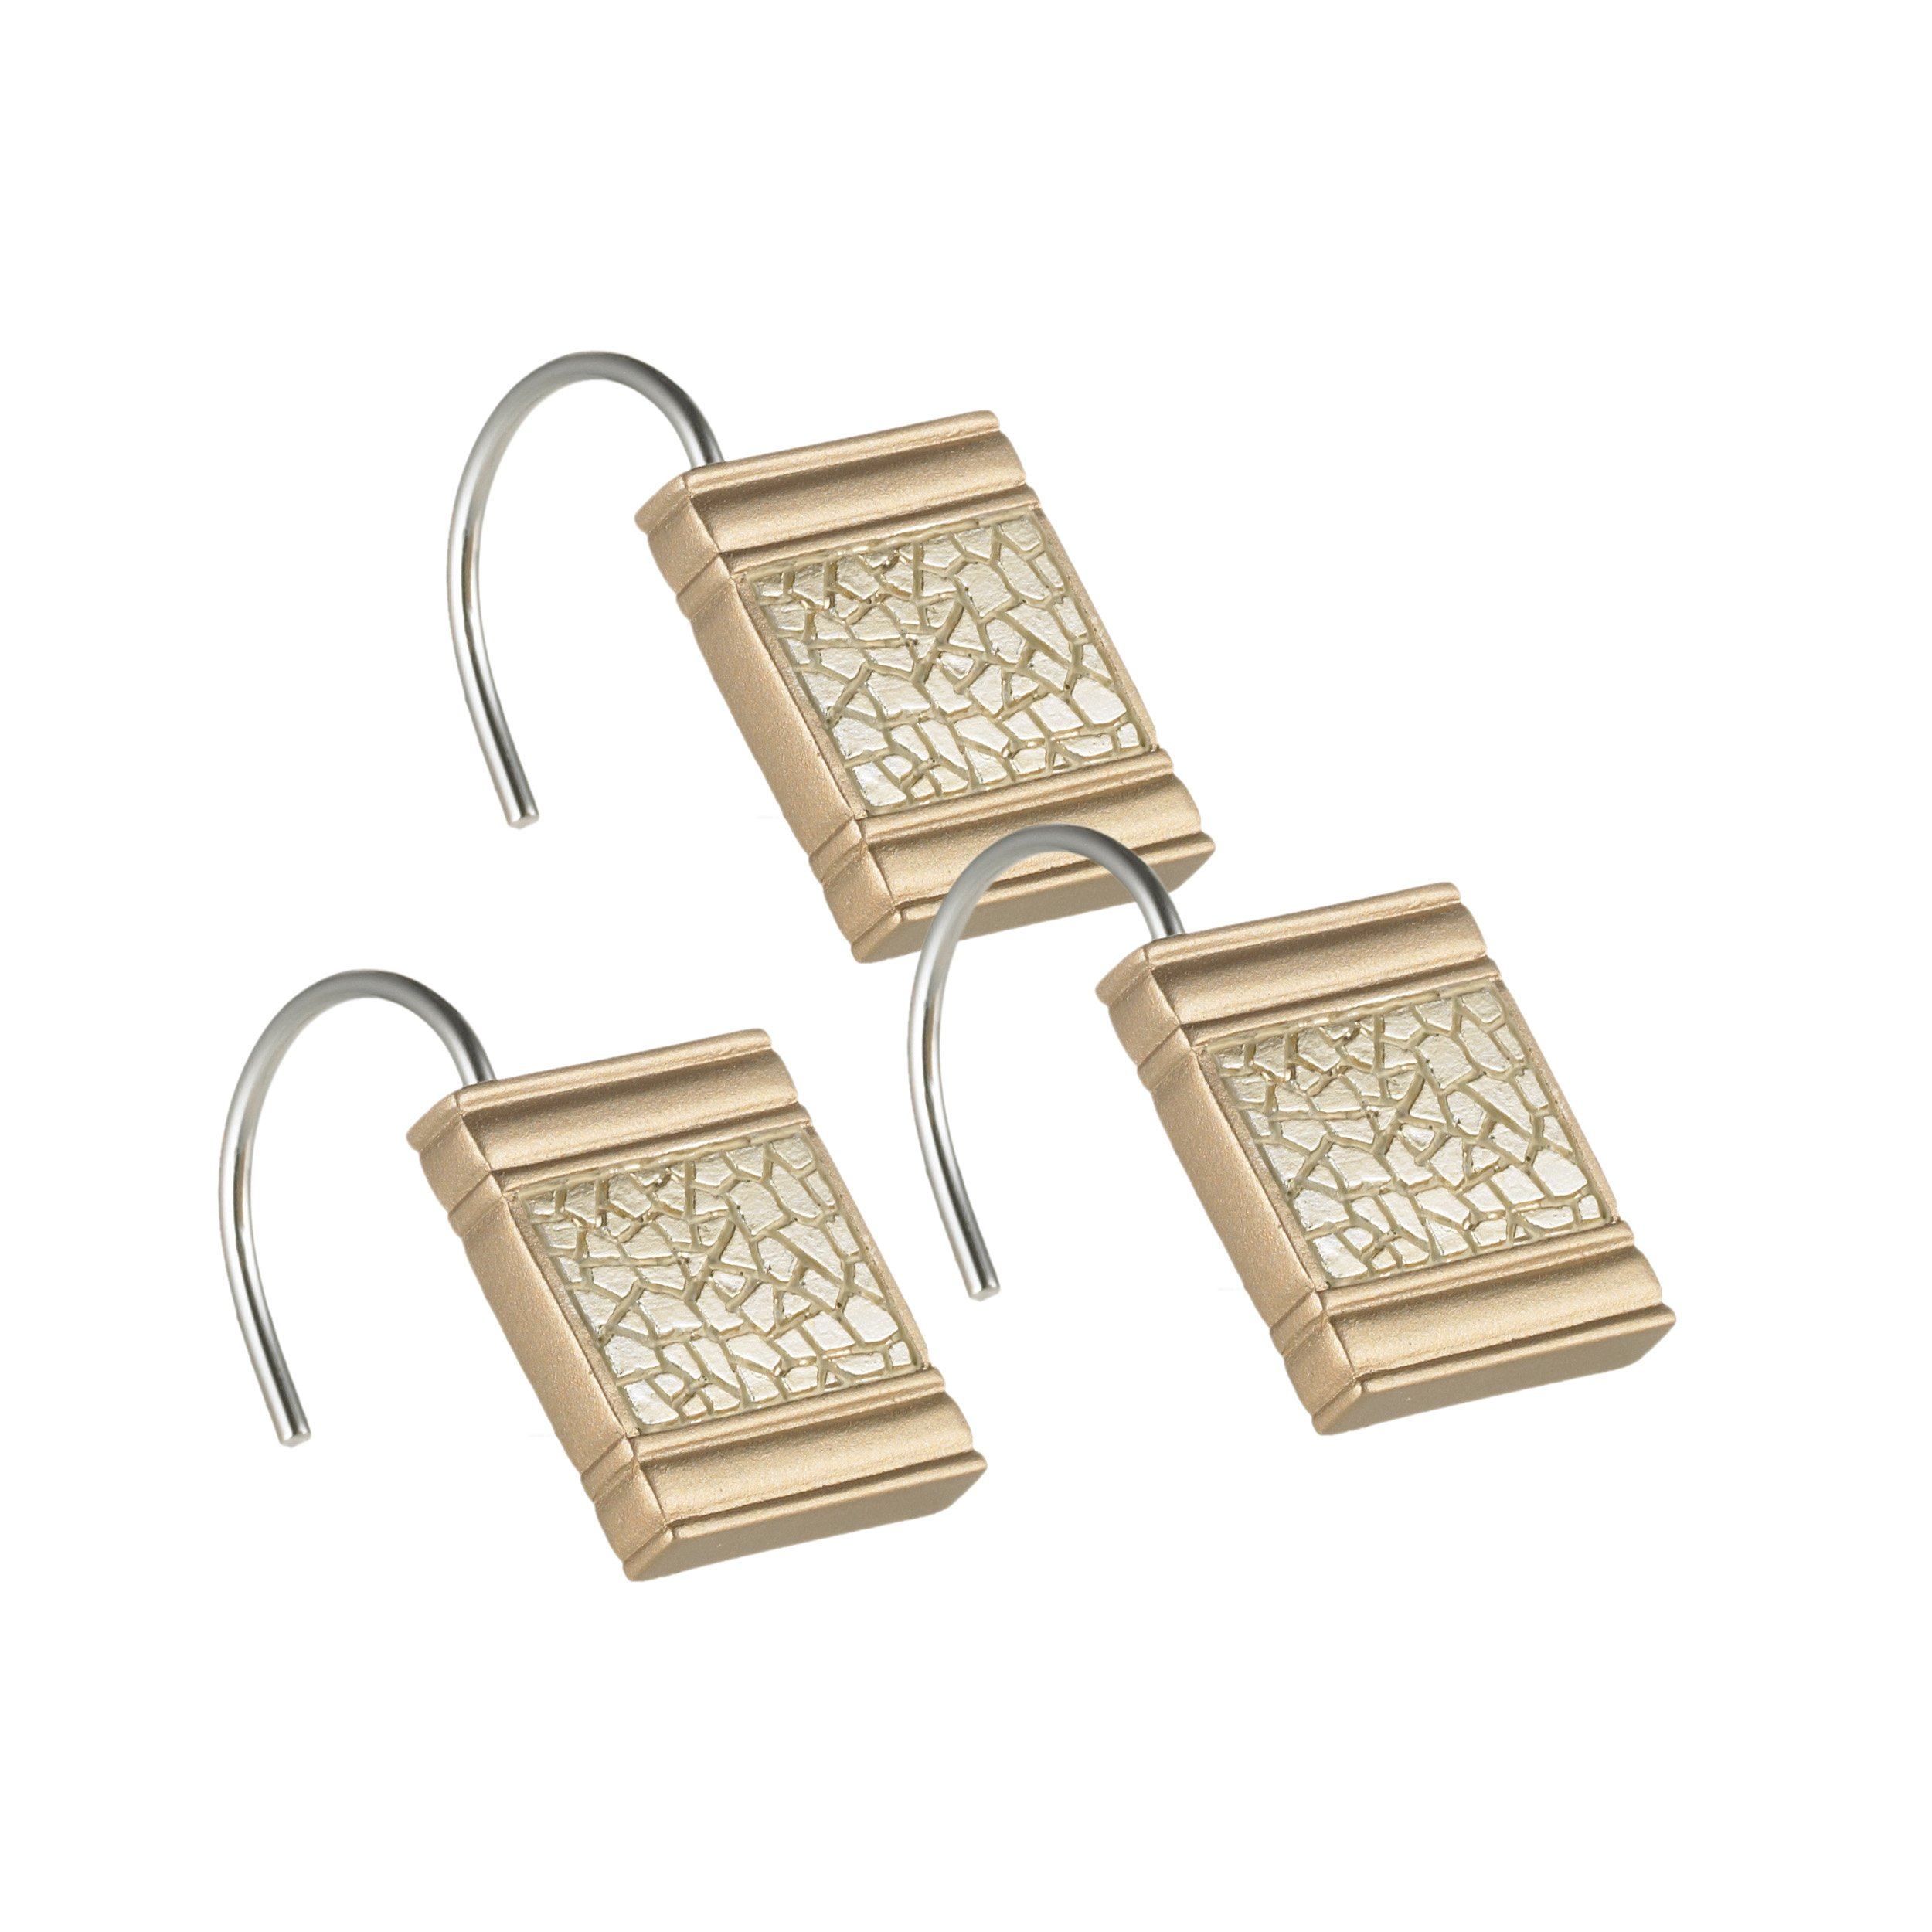 Popular Bath 839258 Sinatra Shower Hooks, Champagne Gold